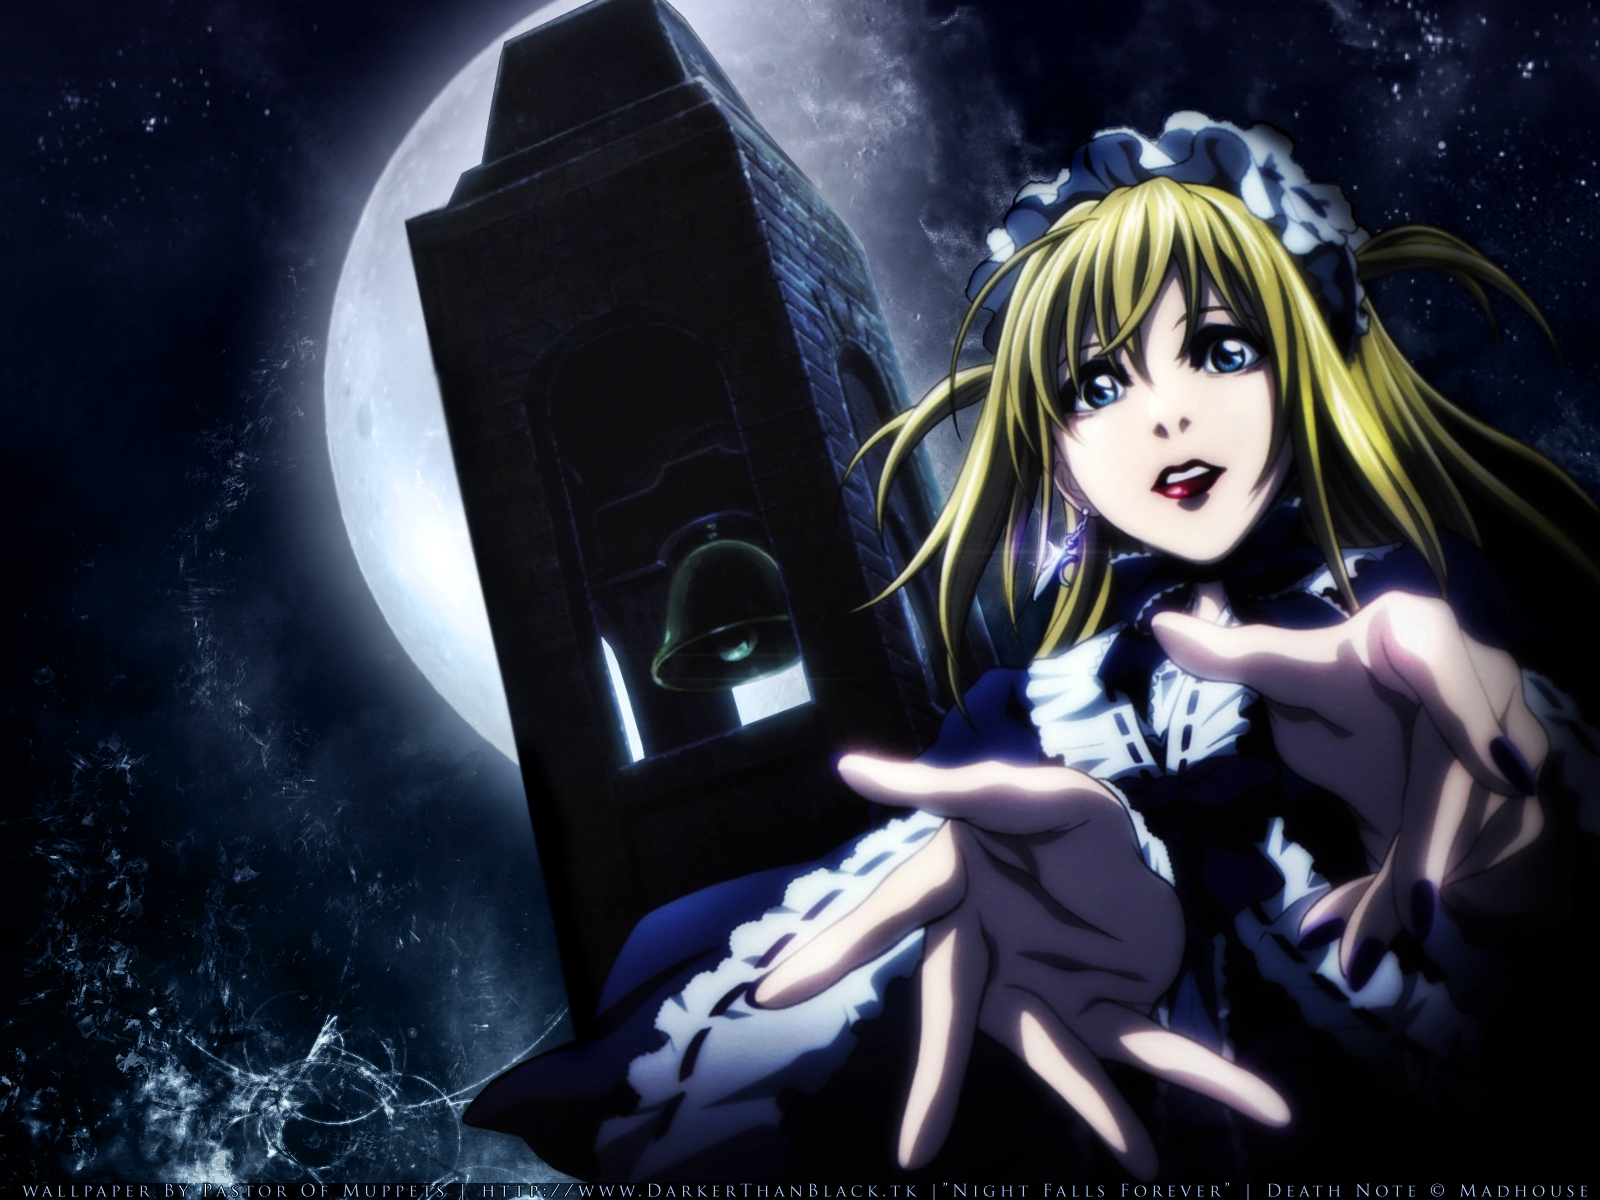 Amane Misa - DEATH NOTE - Wallpaper #188939 - Zerochan Anime Image Board